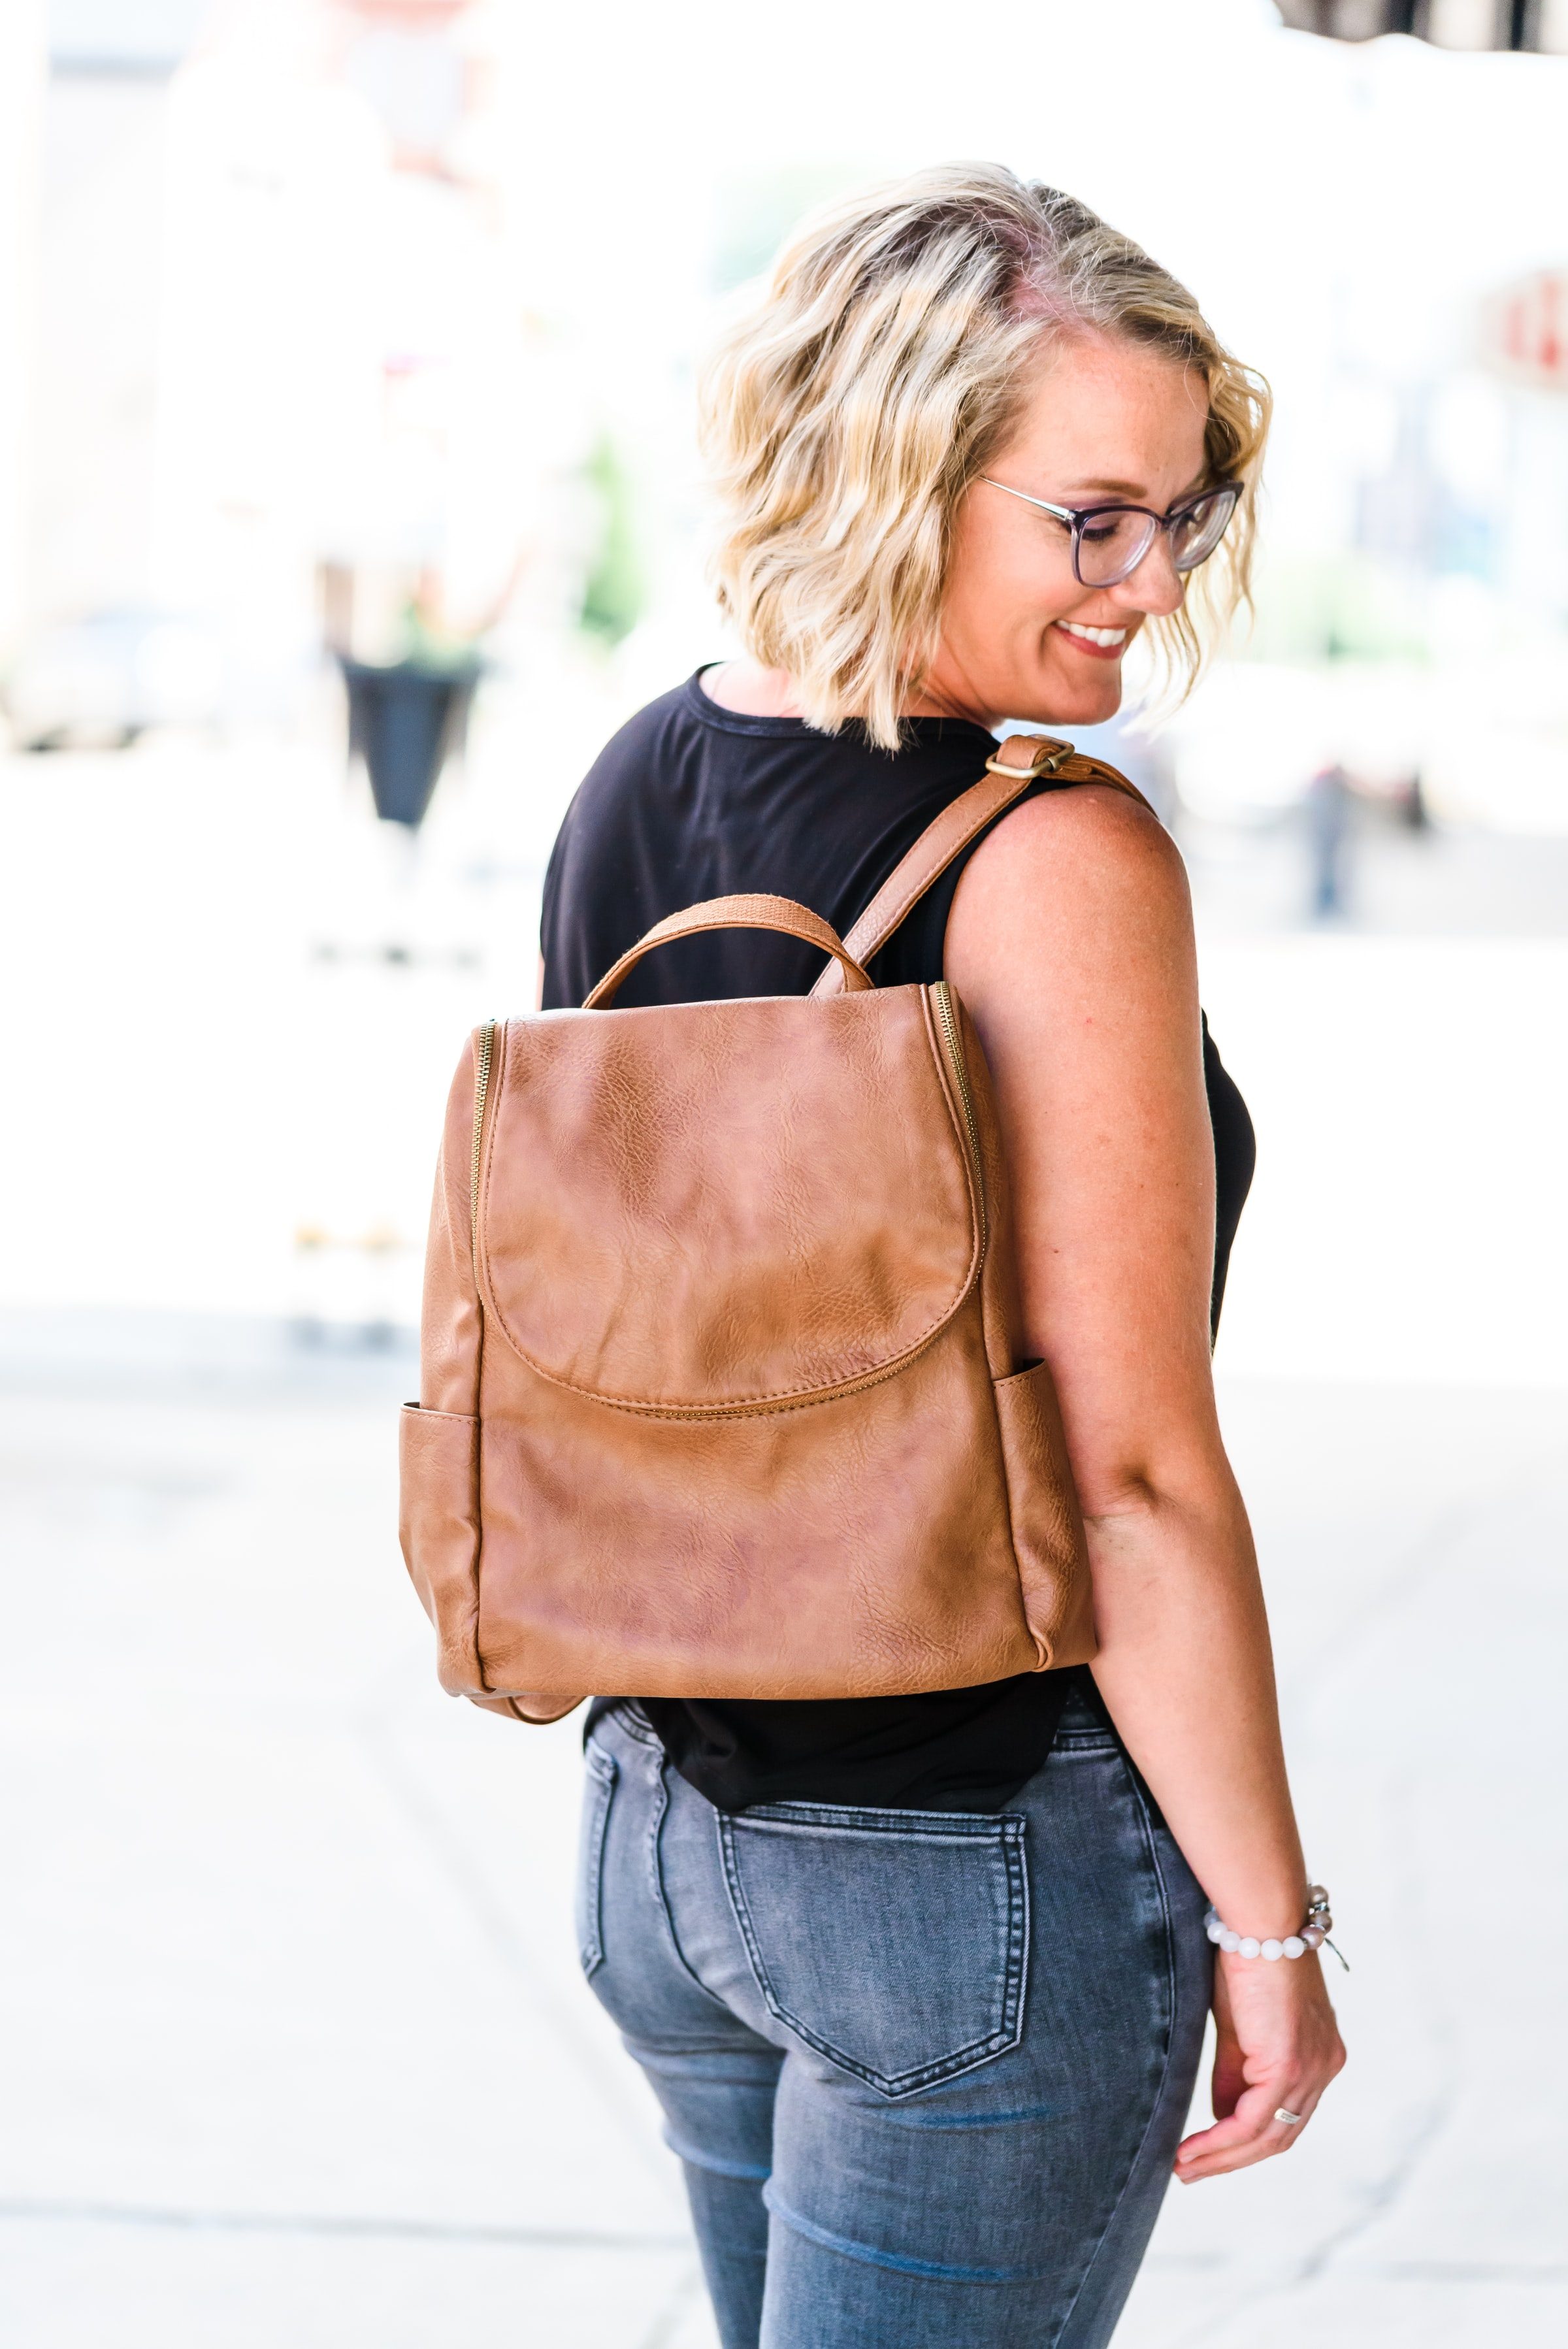 You Don't Have To Be A Vegan To Choose Vegan Leather – How Using Non-Natural Leather Can Save You And The Environment